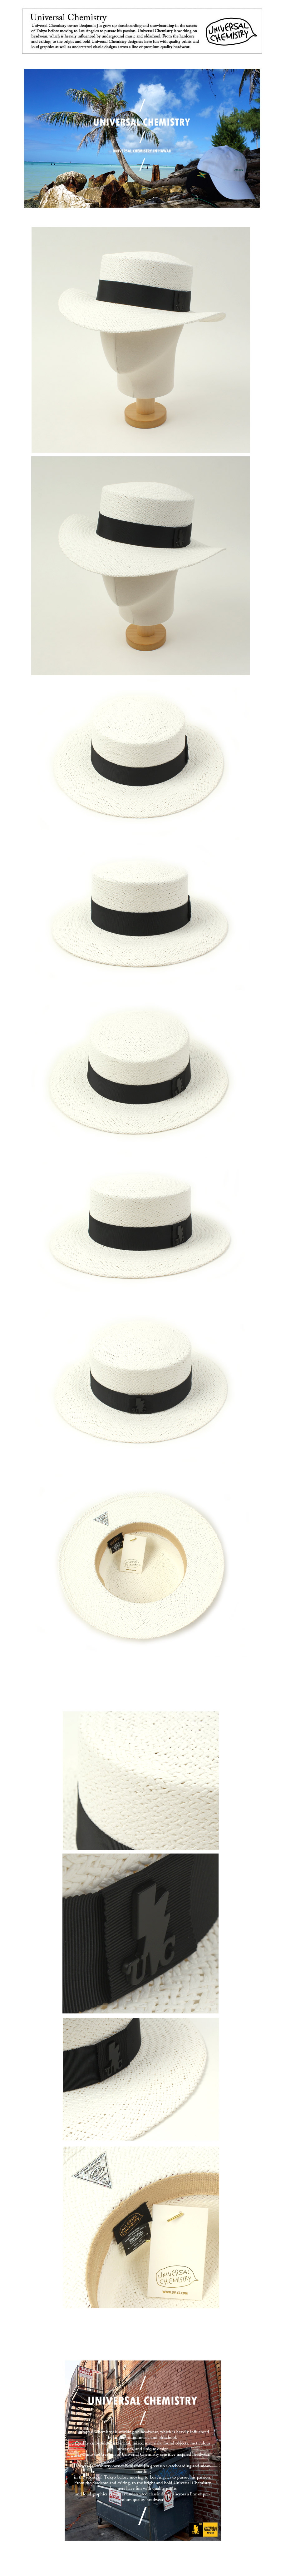 Black Line White Panama Hat 파나마햇